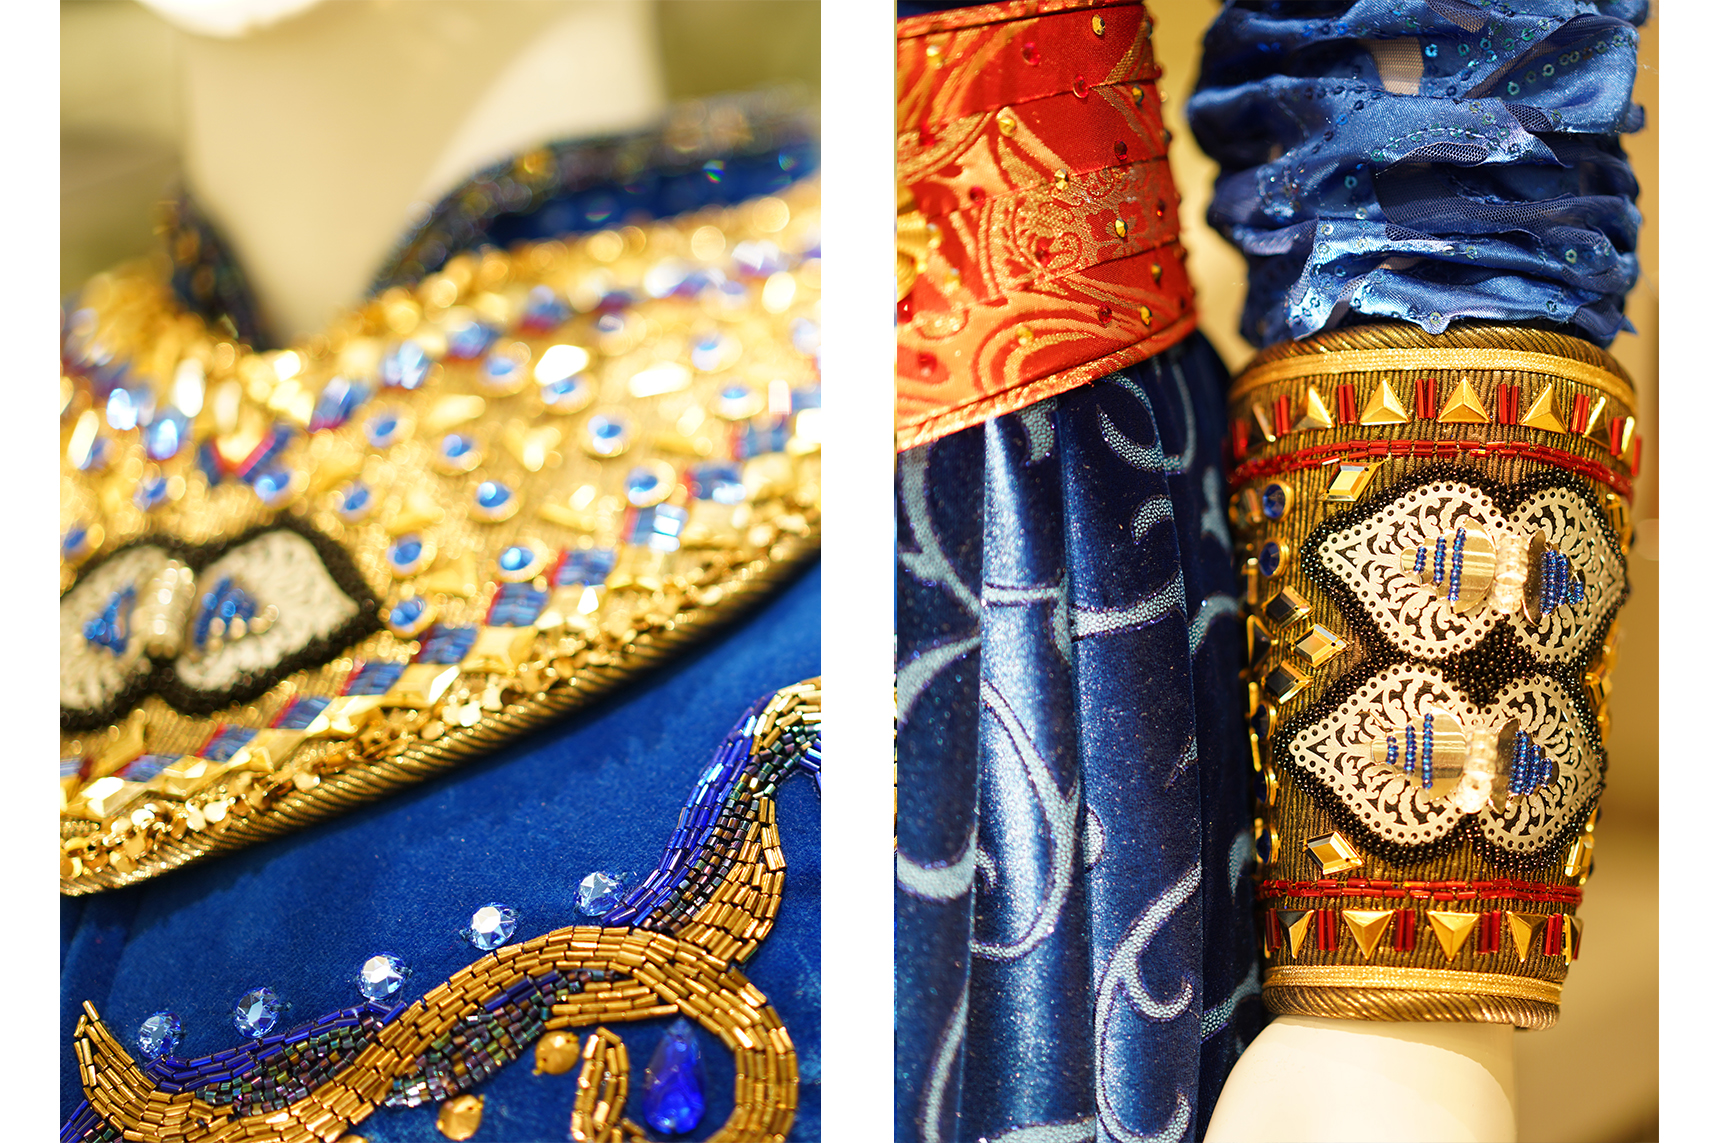 Aladdin Broadway Musical Genie Costume Detail